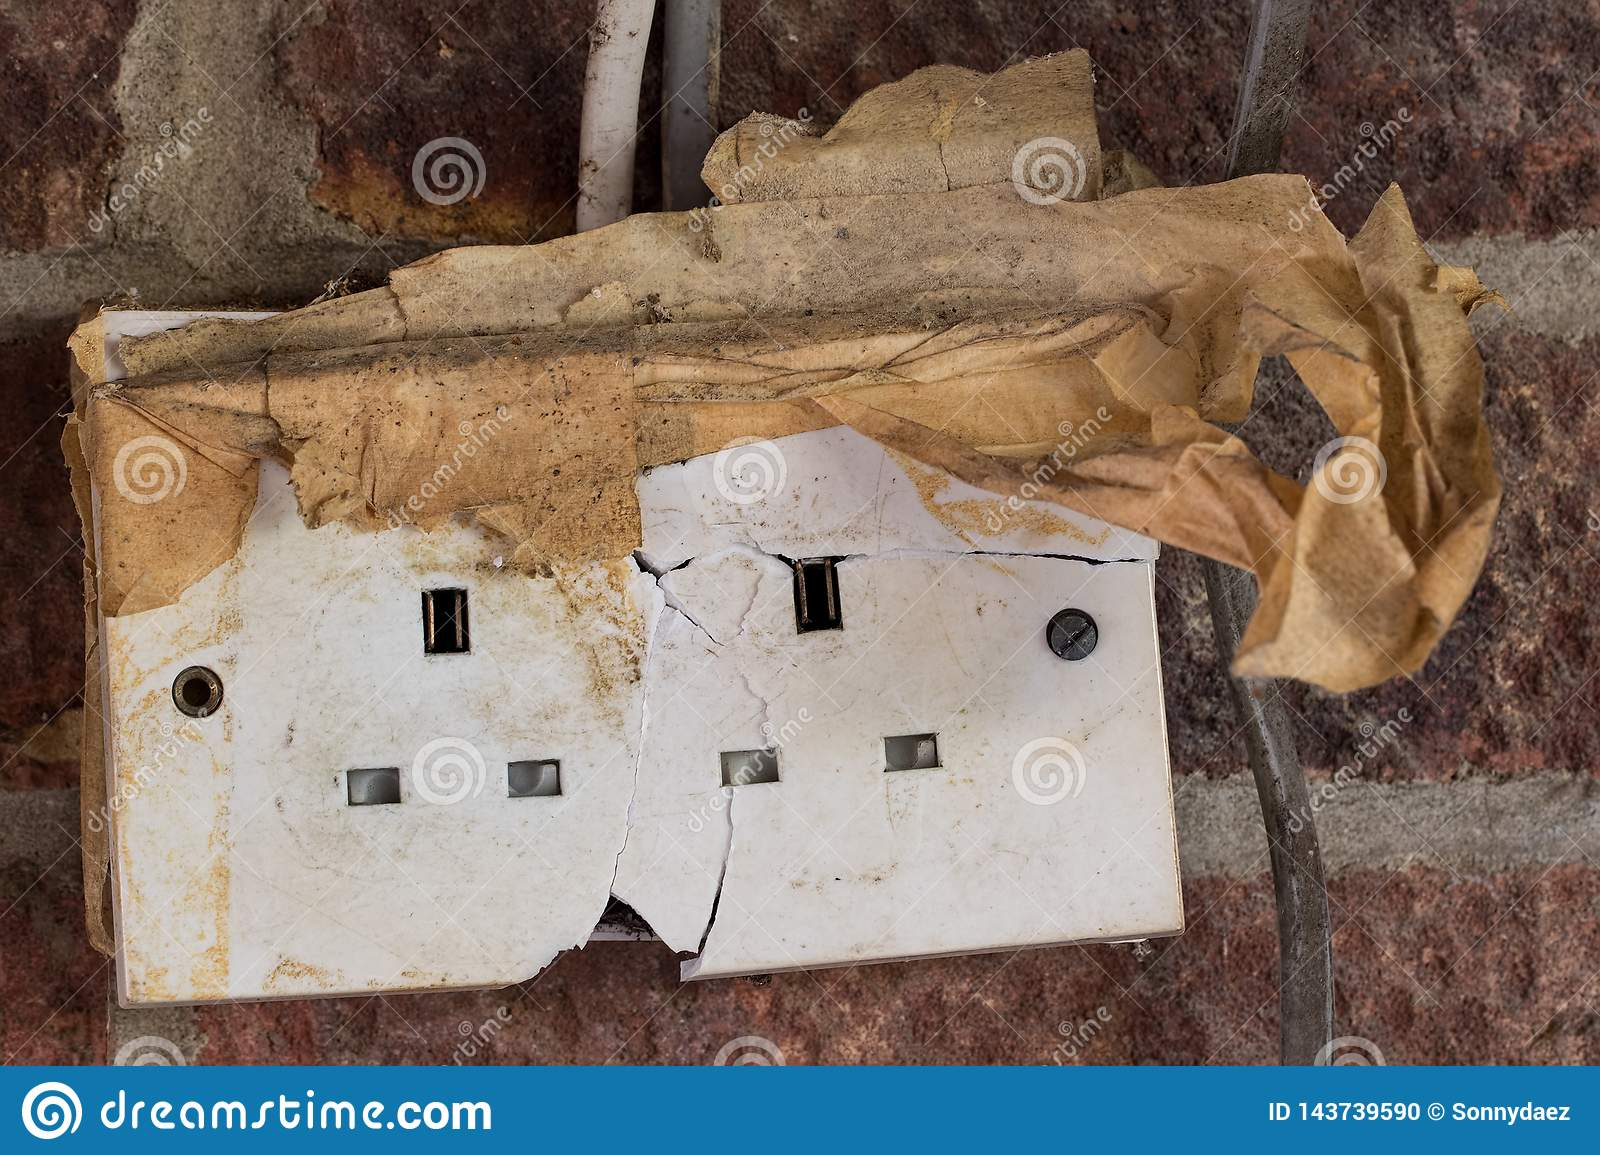 electricity hazard  dangerous cracked and damaged electrical power wall  socket  old home garage broken electric plug wiring and cable